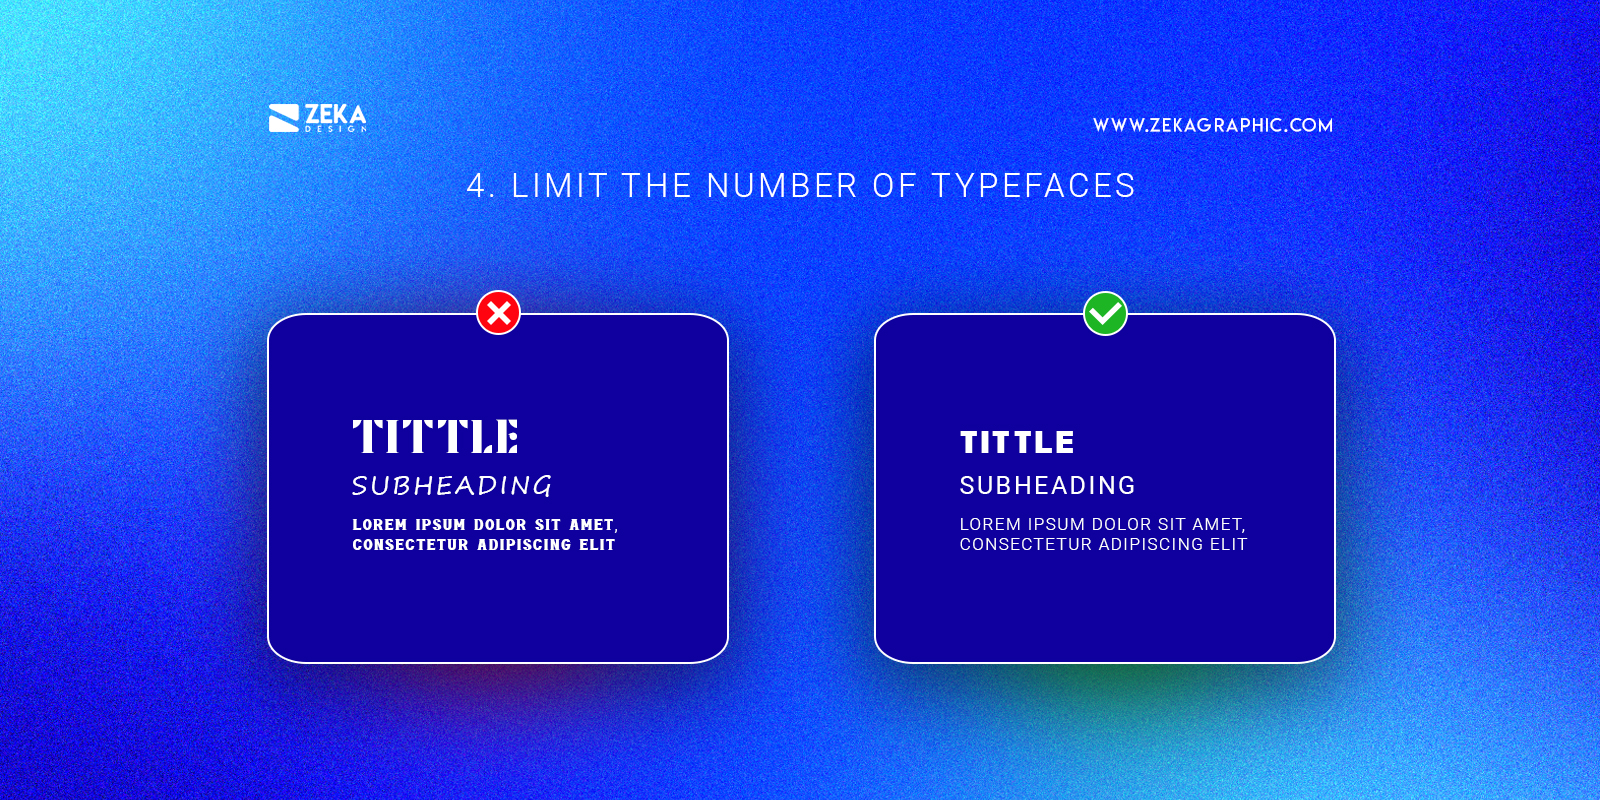 Limit The Number of Typefaces Graphic Design Tip